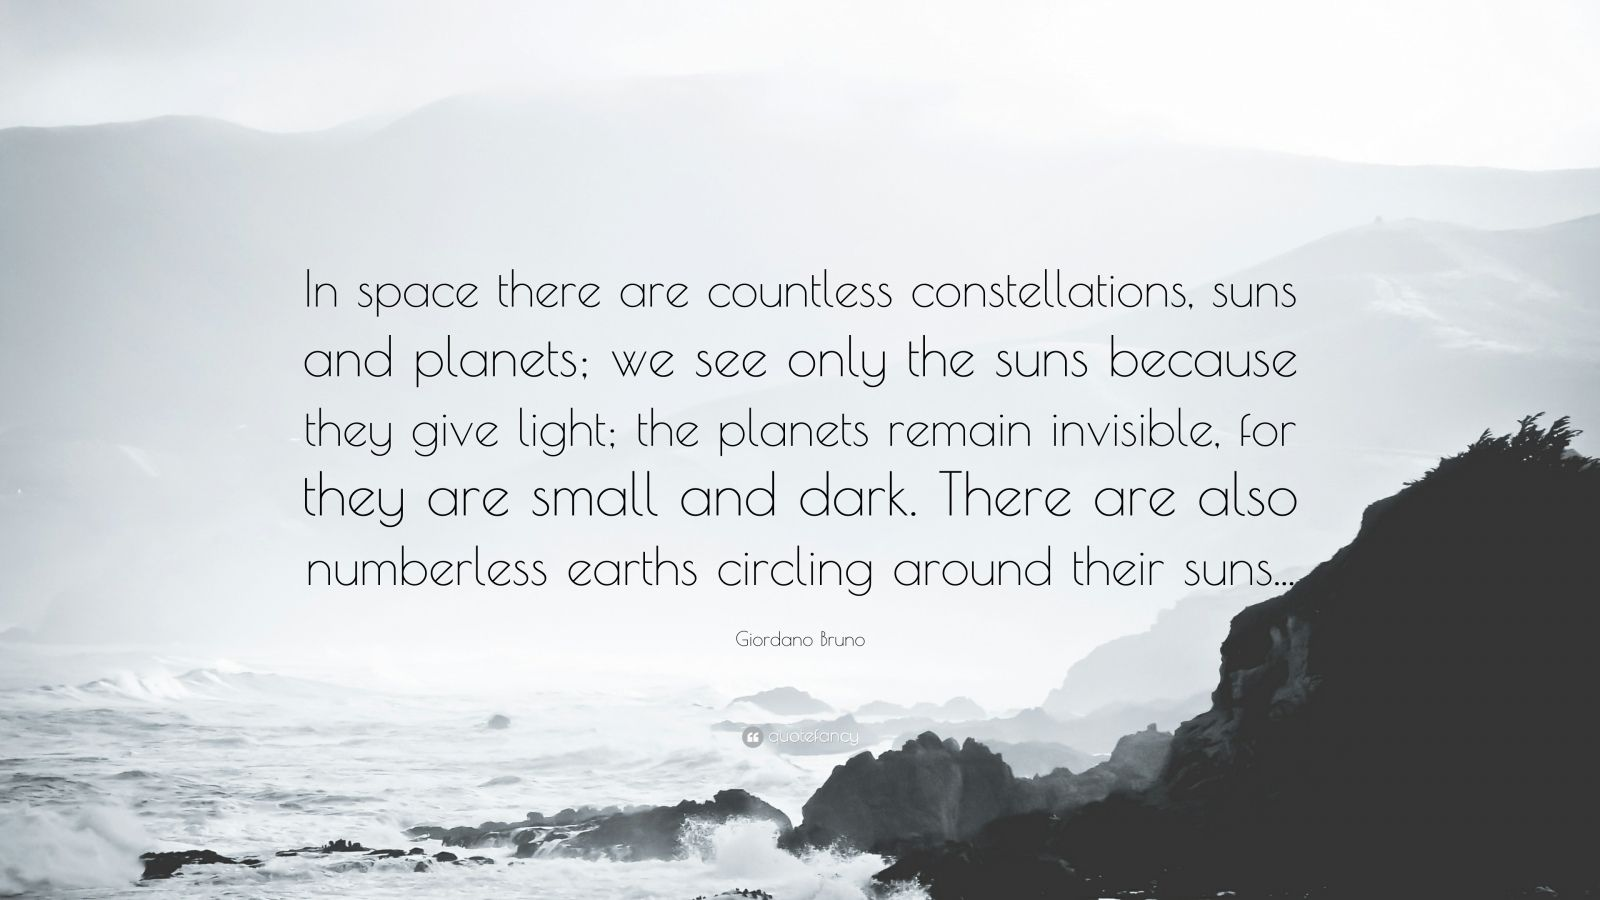 """Giordano Bruno Quote: """"In space there are countless constellations, suns and planets; we see only the suns because they give light; the planets remain invisible, for they are small and dark. There are also numberless earths circling around their suns..."""""""